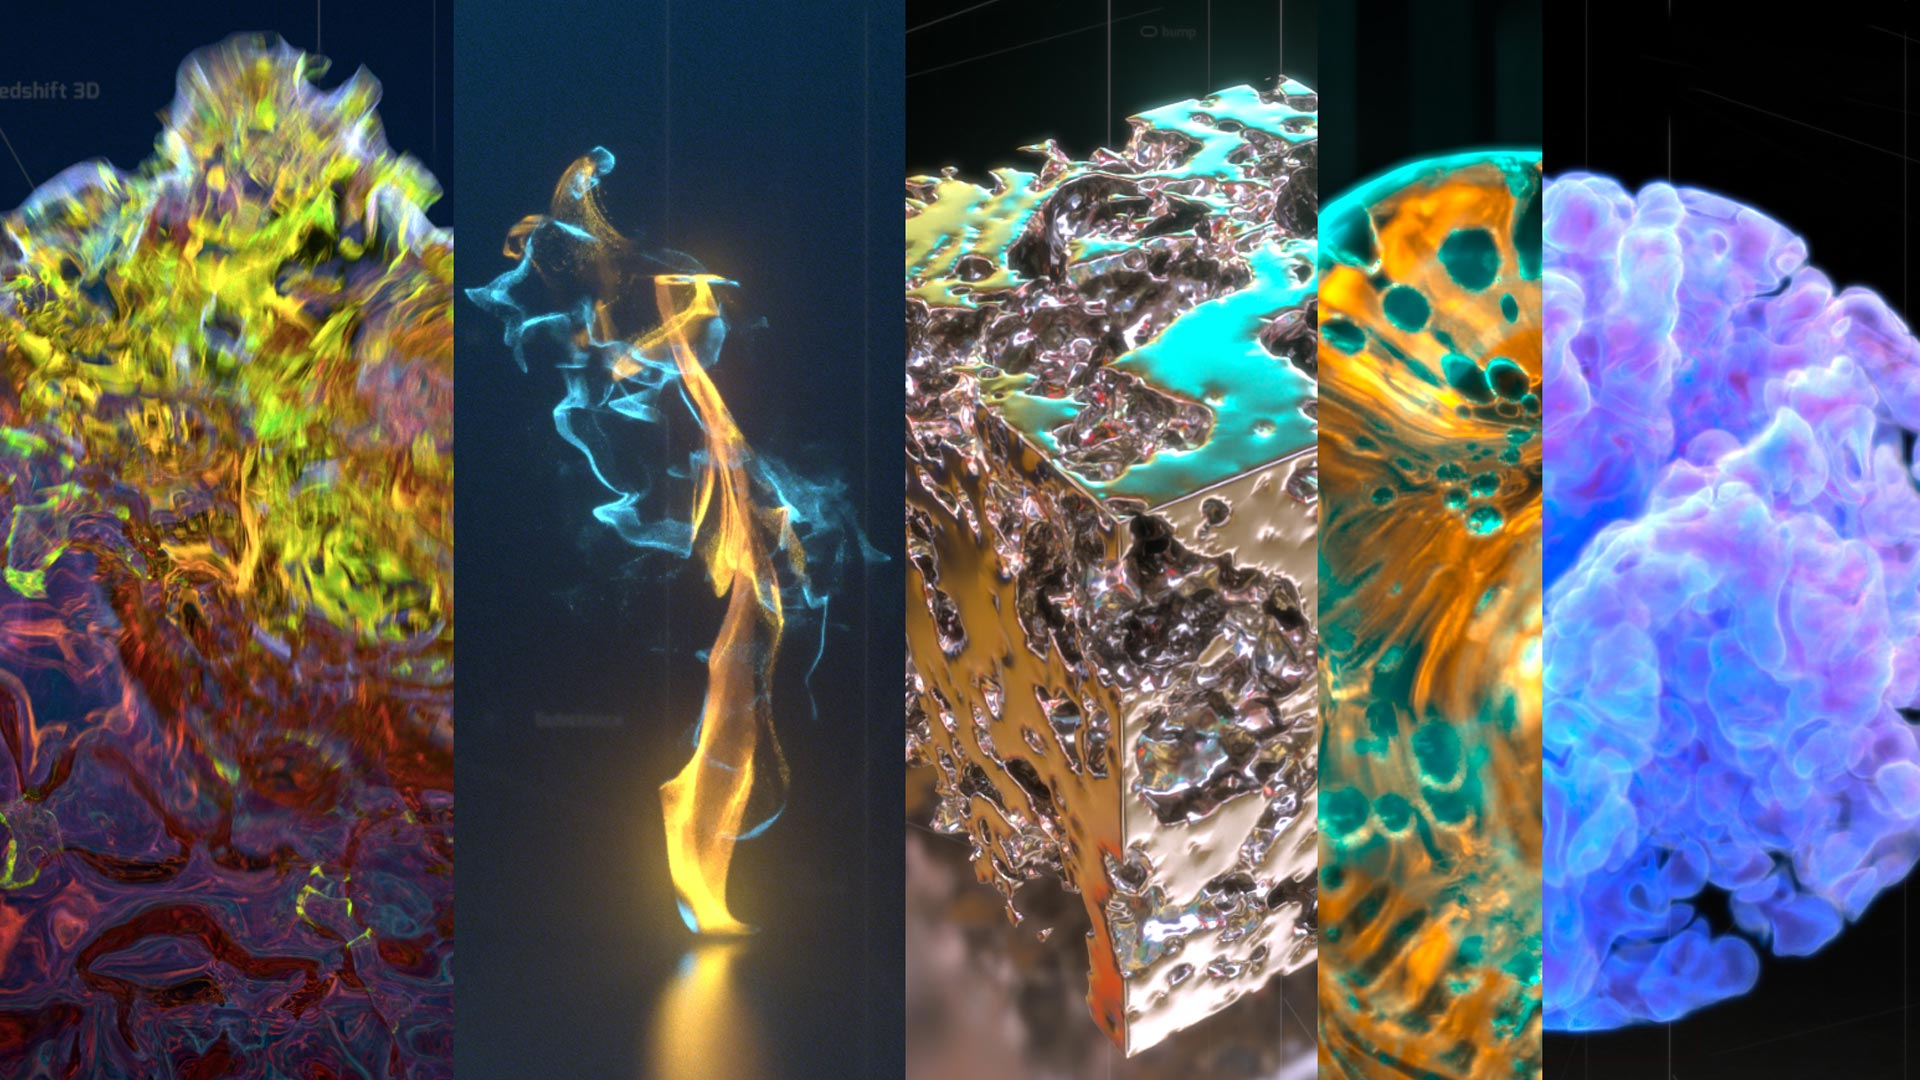 X-Particles with Redshift 3D